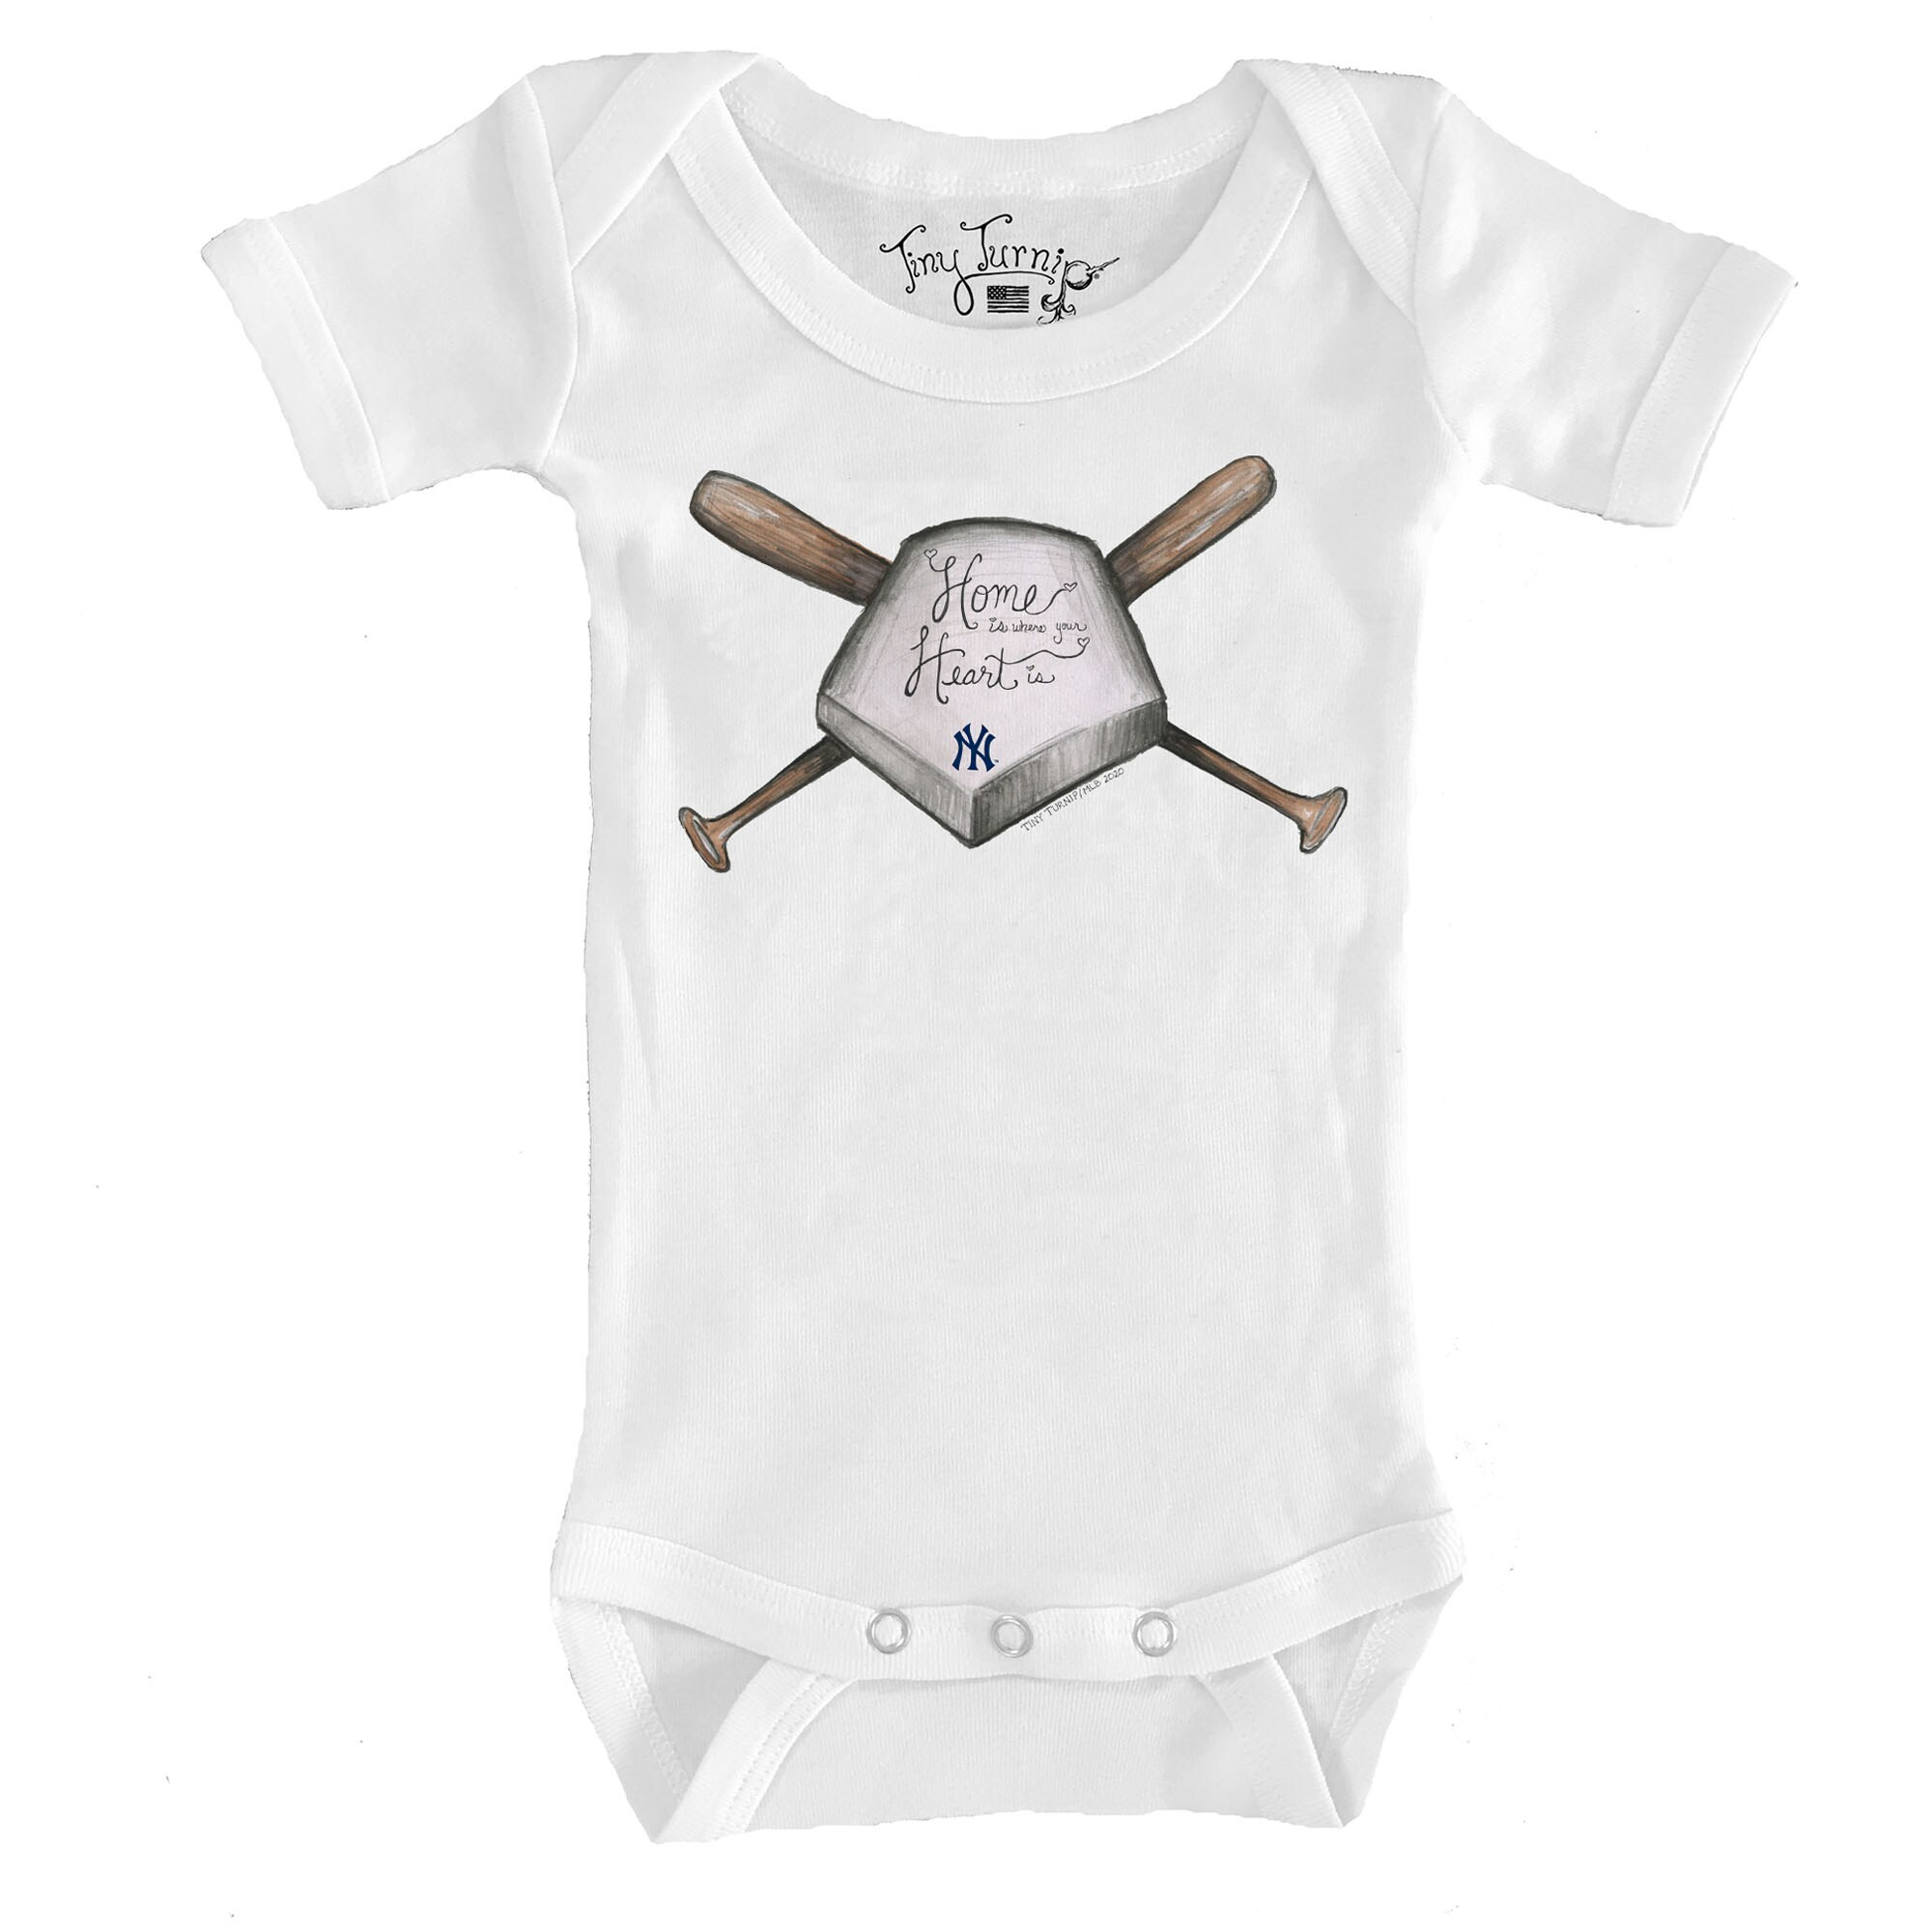 New York Yankees Tiny Turnip Infant Home Is Where Your Heart Is Bodysuit - White